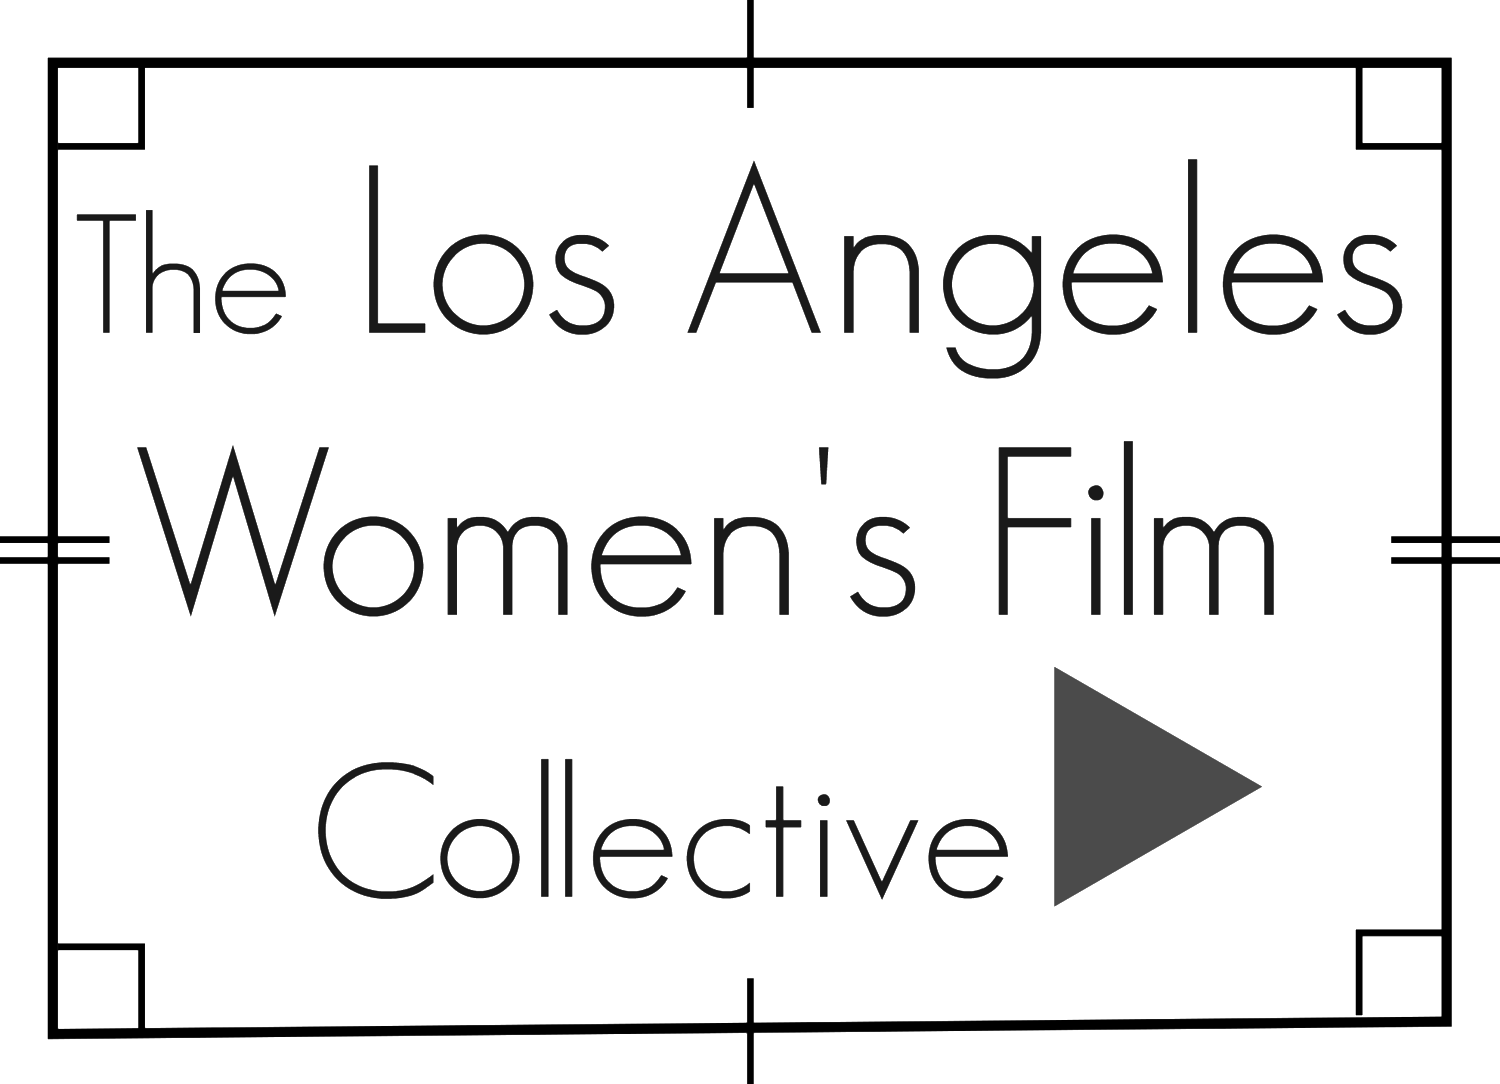 The Los Angeles Women's Film Collective